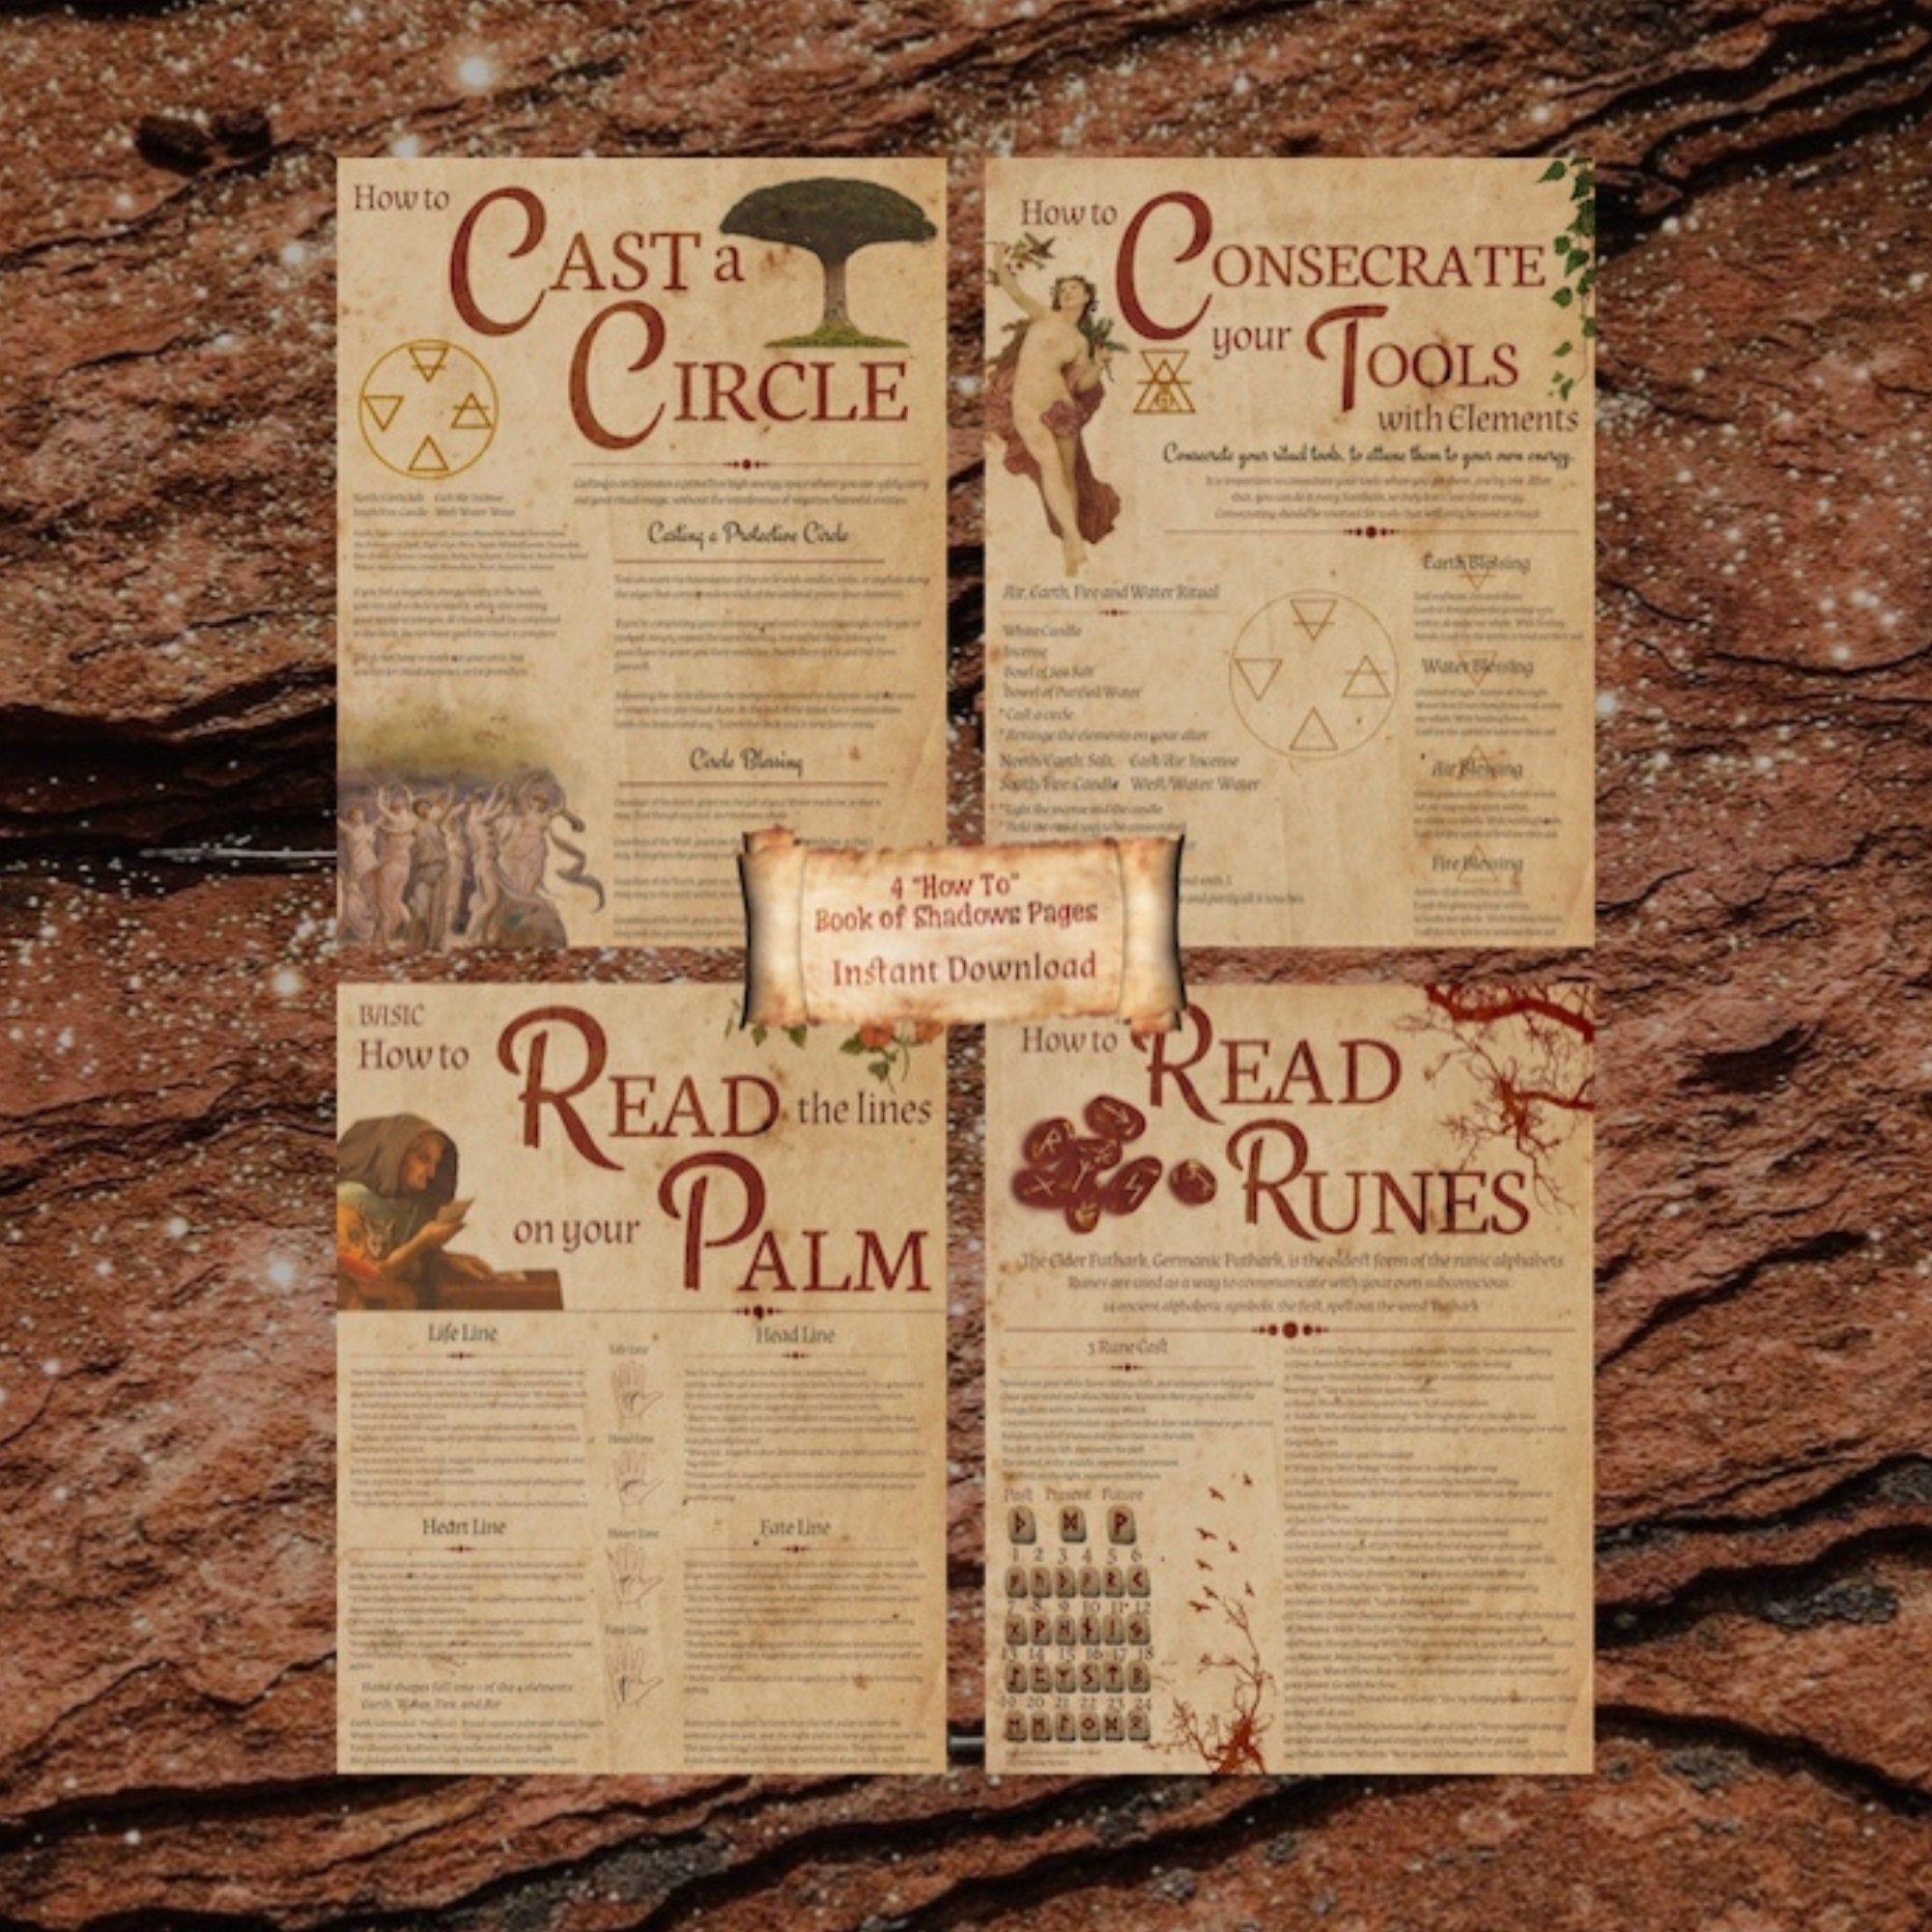 Book of Shadows Pages How to Pages Digital Download Etsy